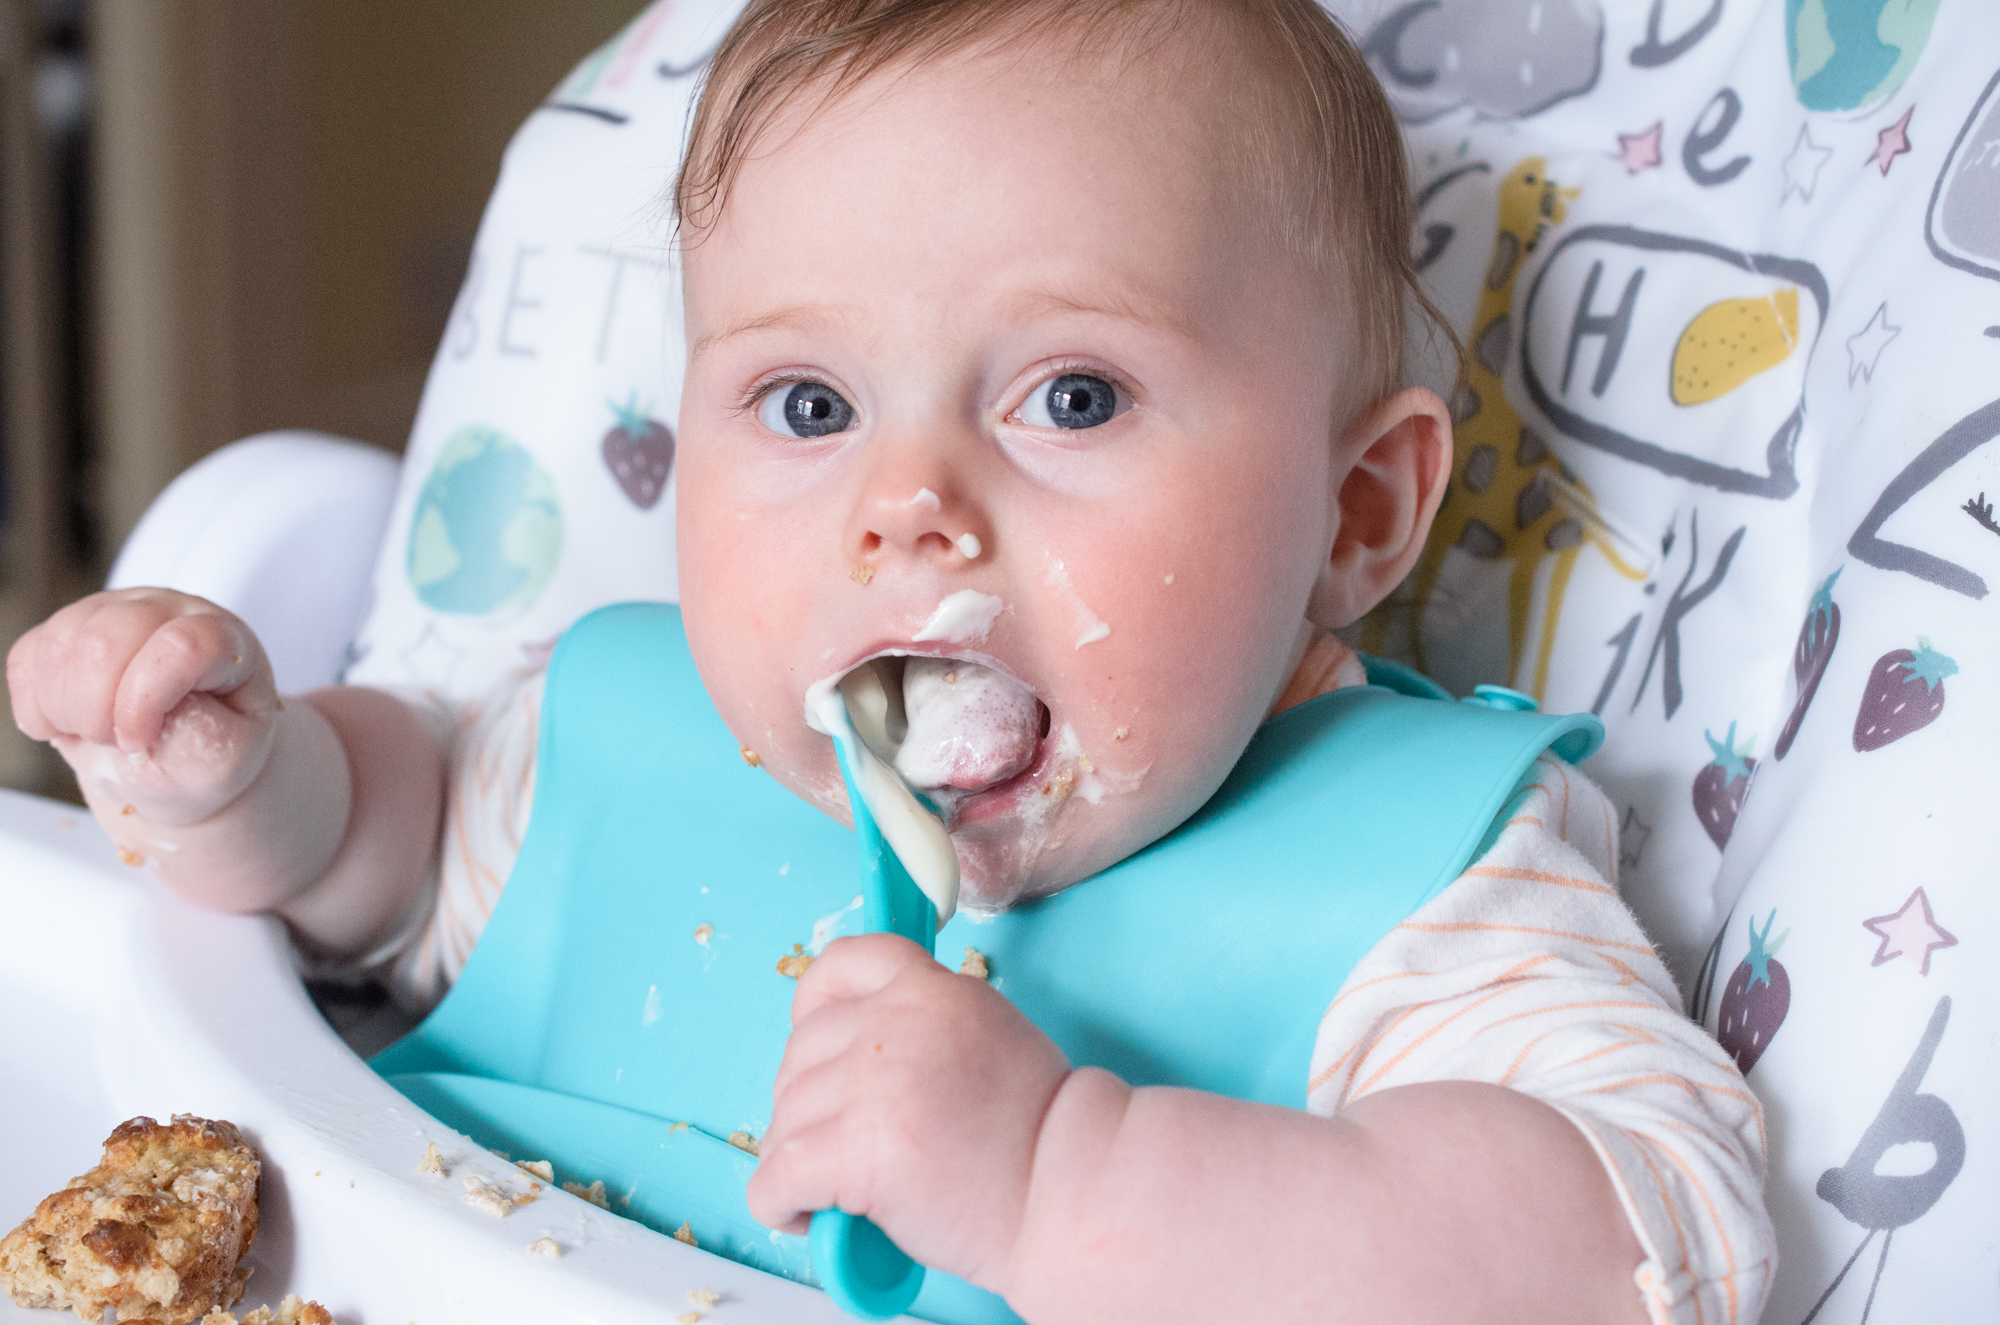 Cara starting baby led weaning with yogurt